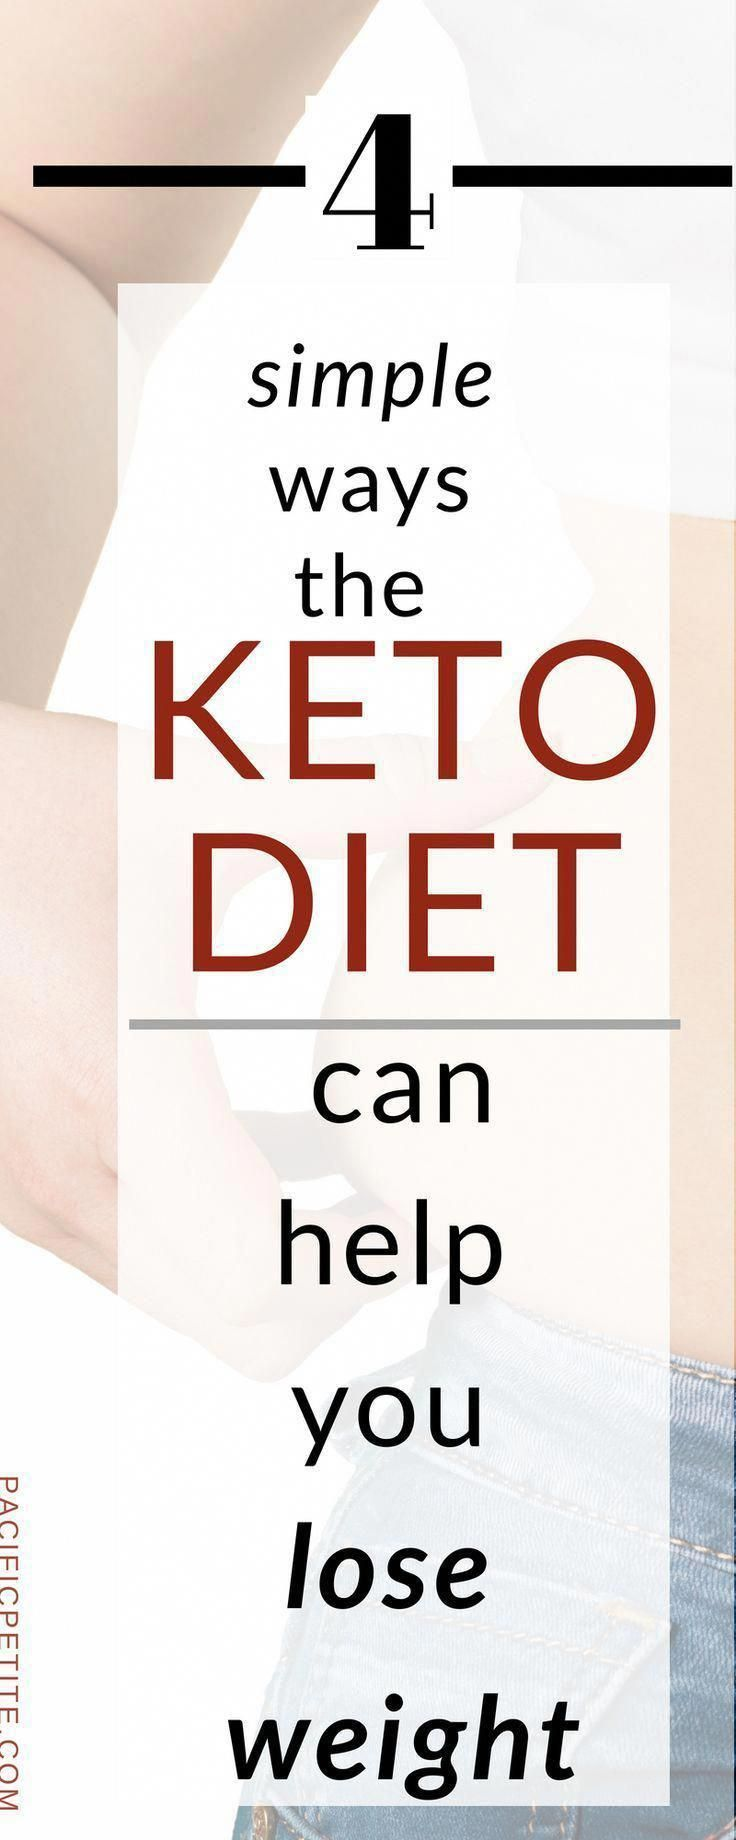 If you're starting your weight loss journey and want a diet plan and or recipes you may want to try...